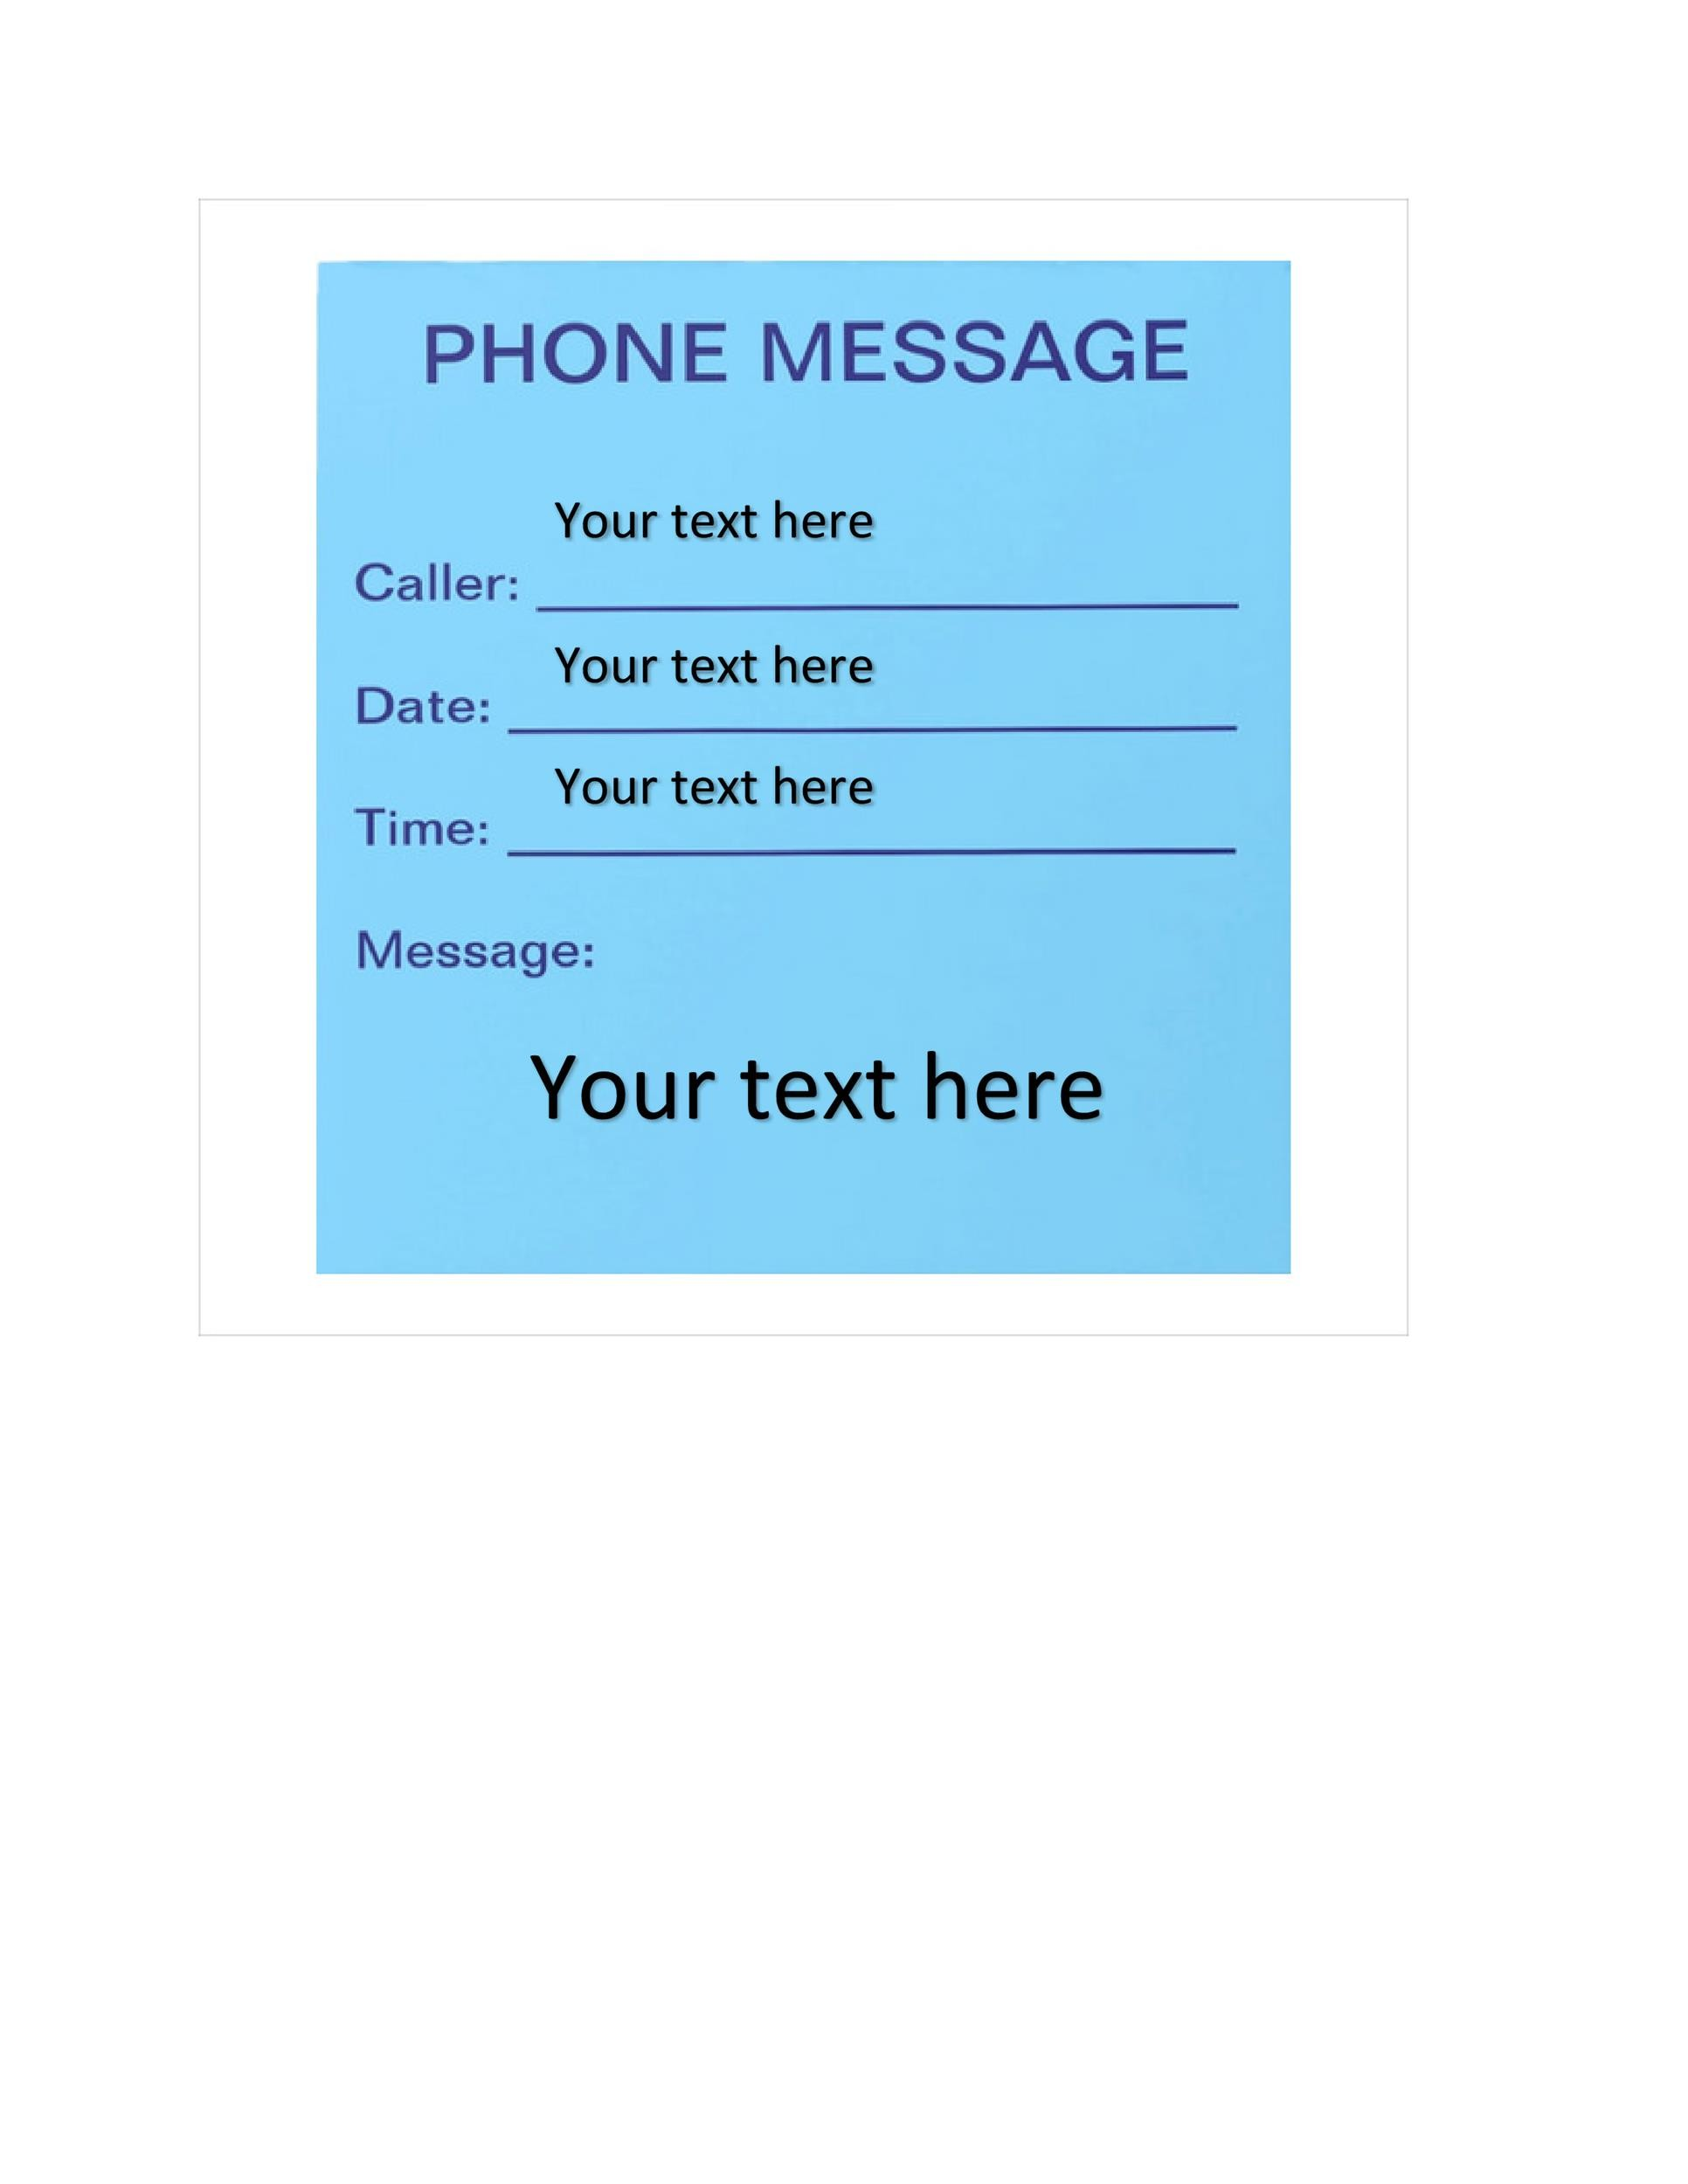 Free phone message template 17